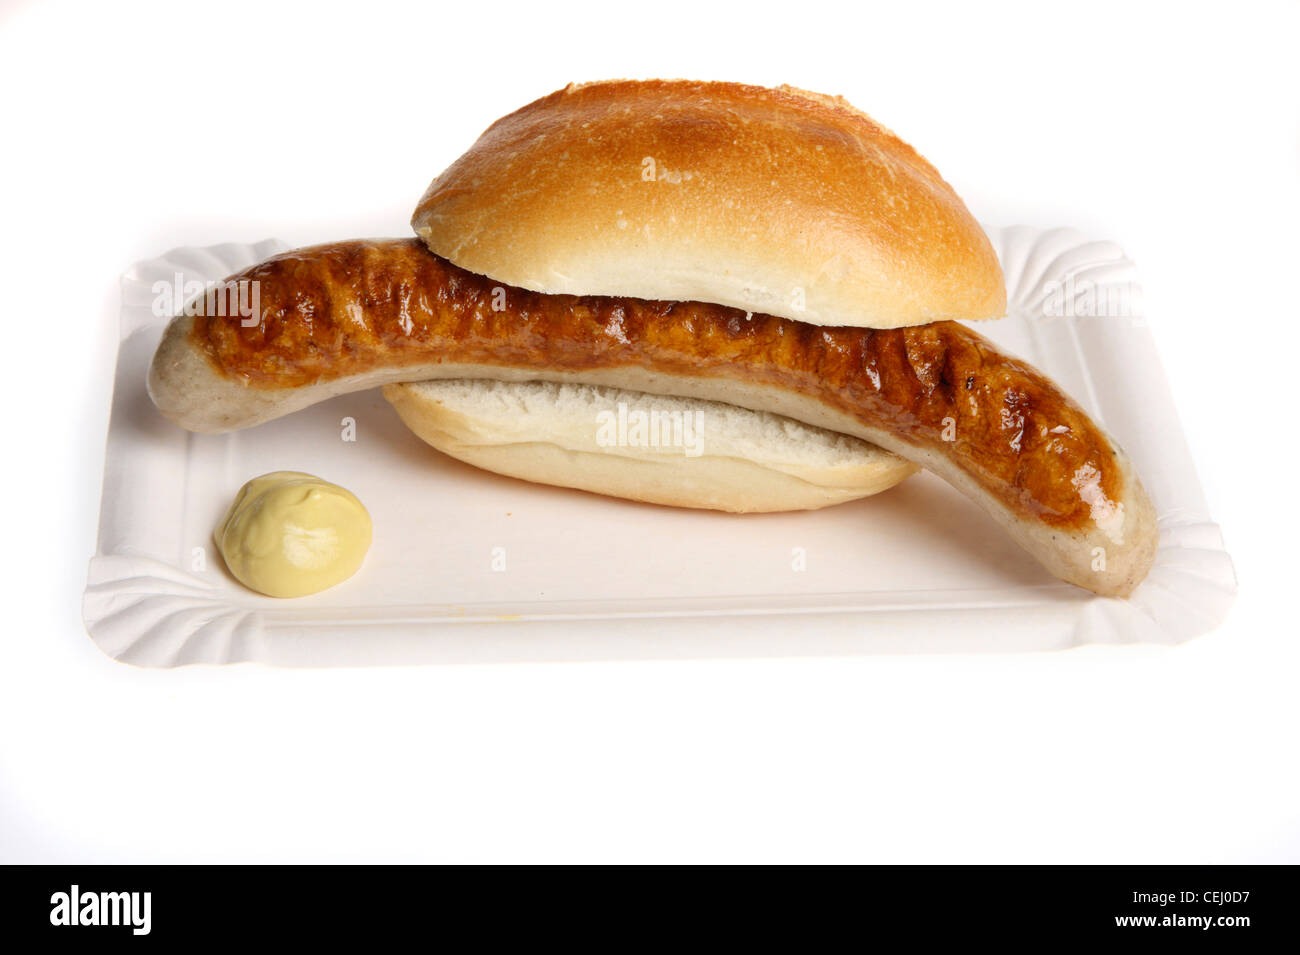 Nutrition, fast food. Bratwurst, meat sausage with a bread roll, mustard. Stock Photo